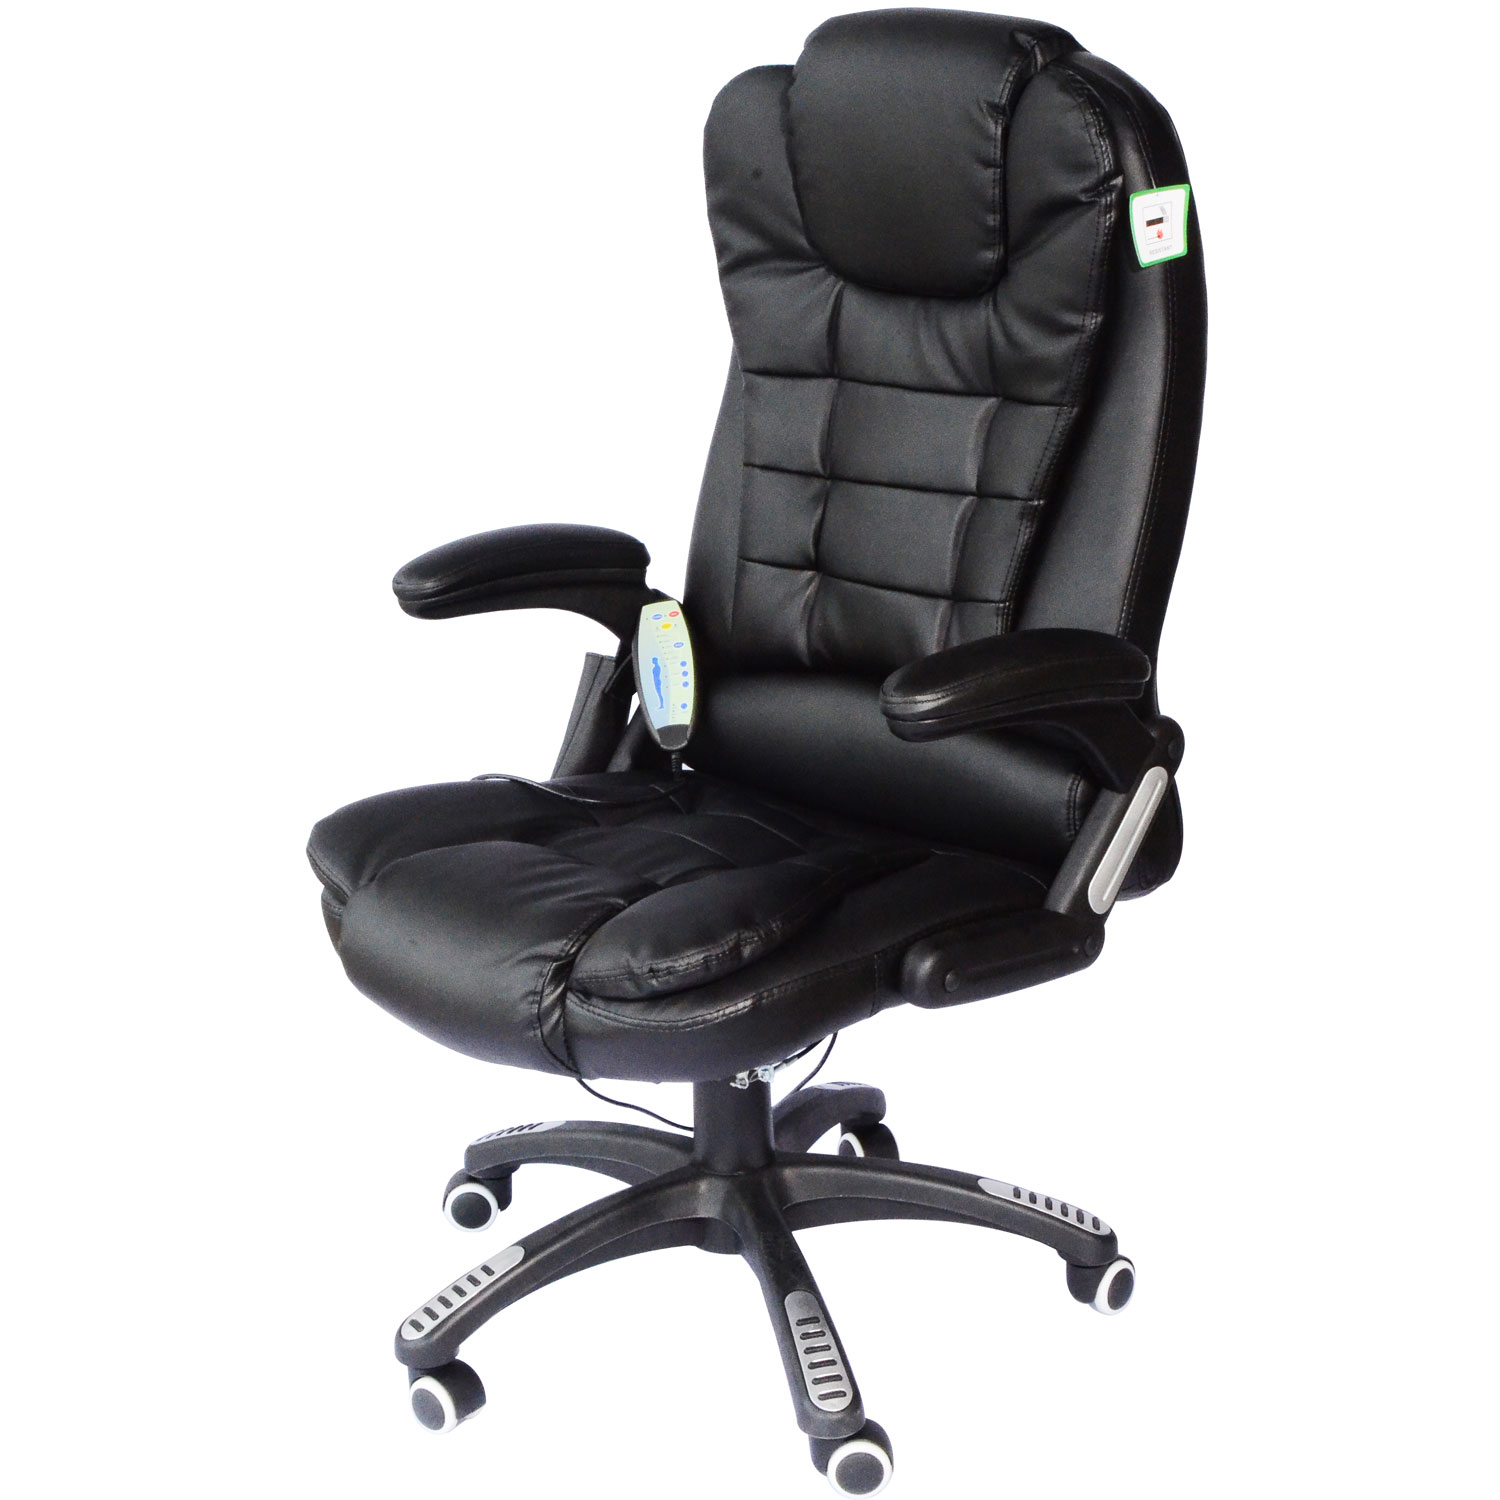 HOMCOM Faux Leather Office Chair With Heating Massage Chair 62x68x111 121 cm Black   - title=